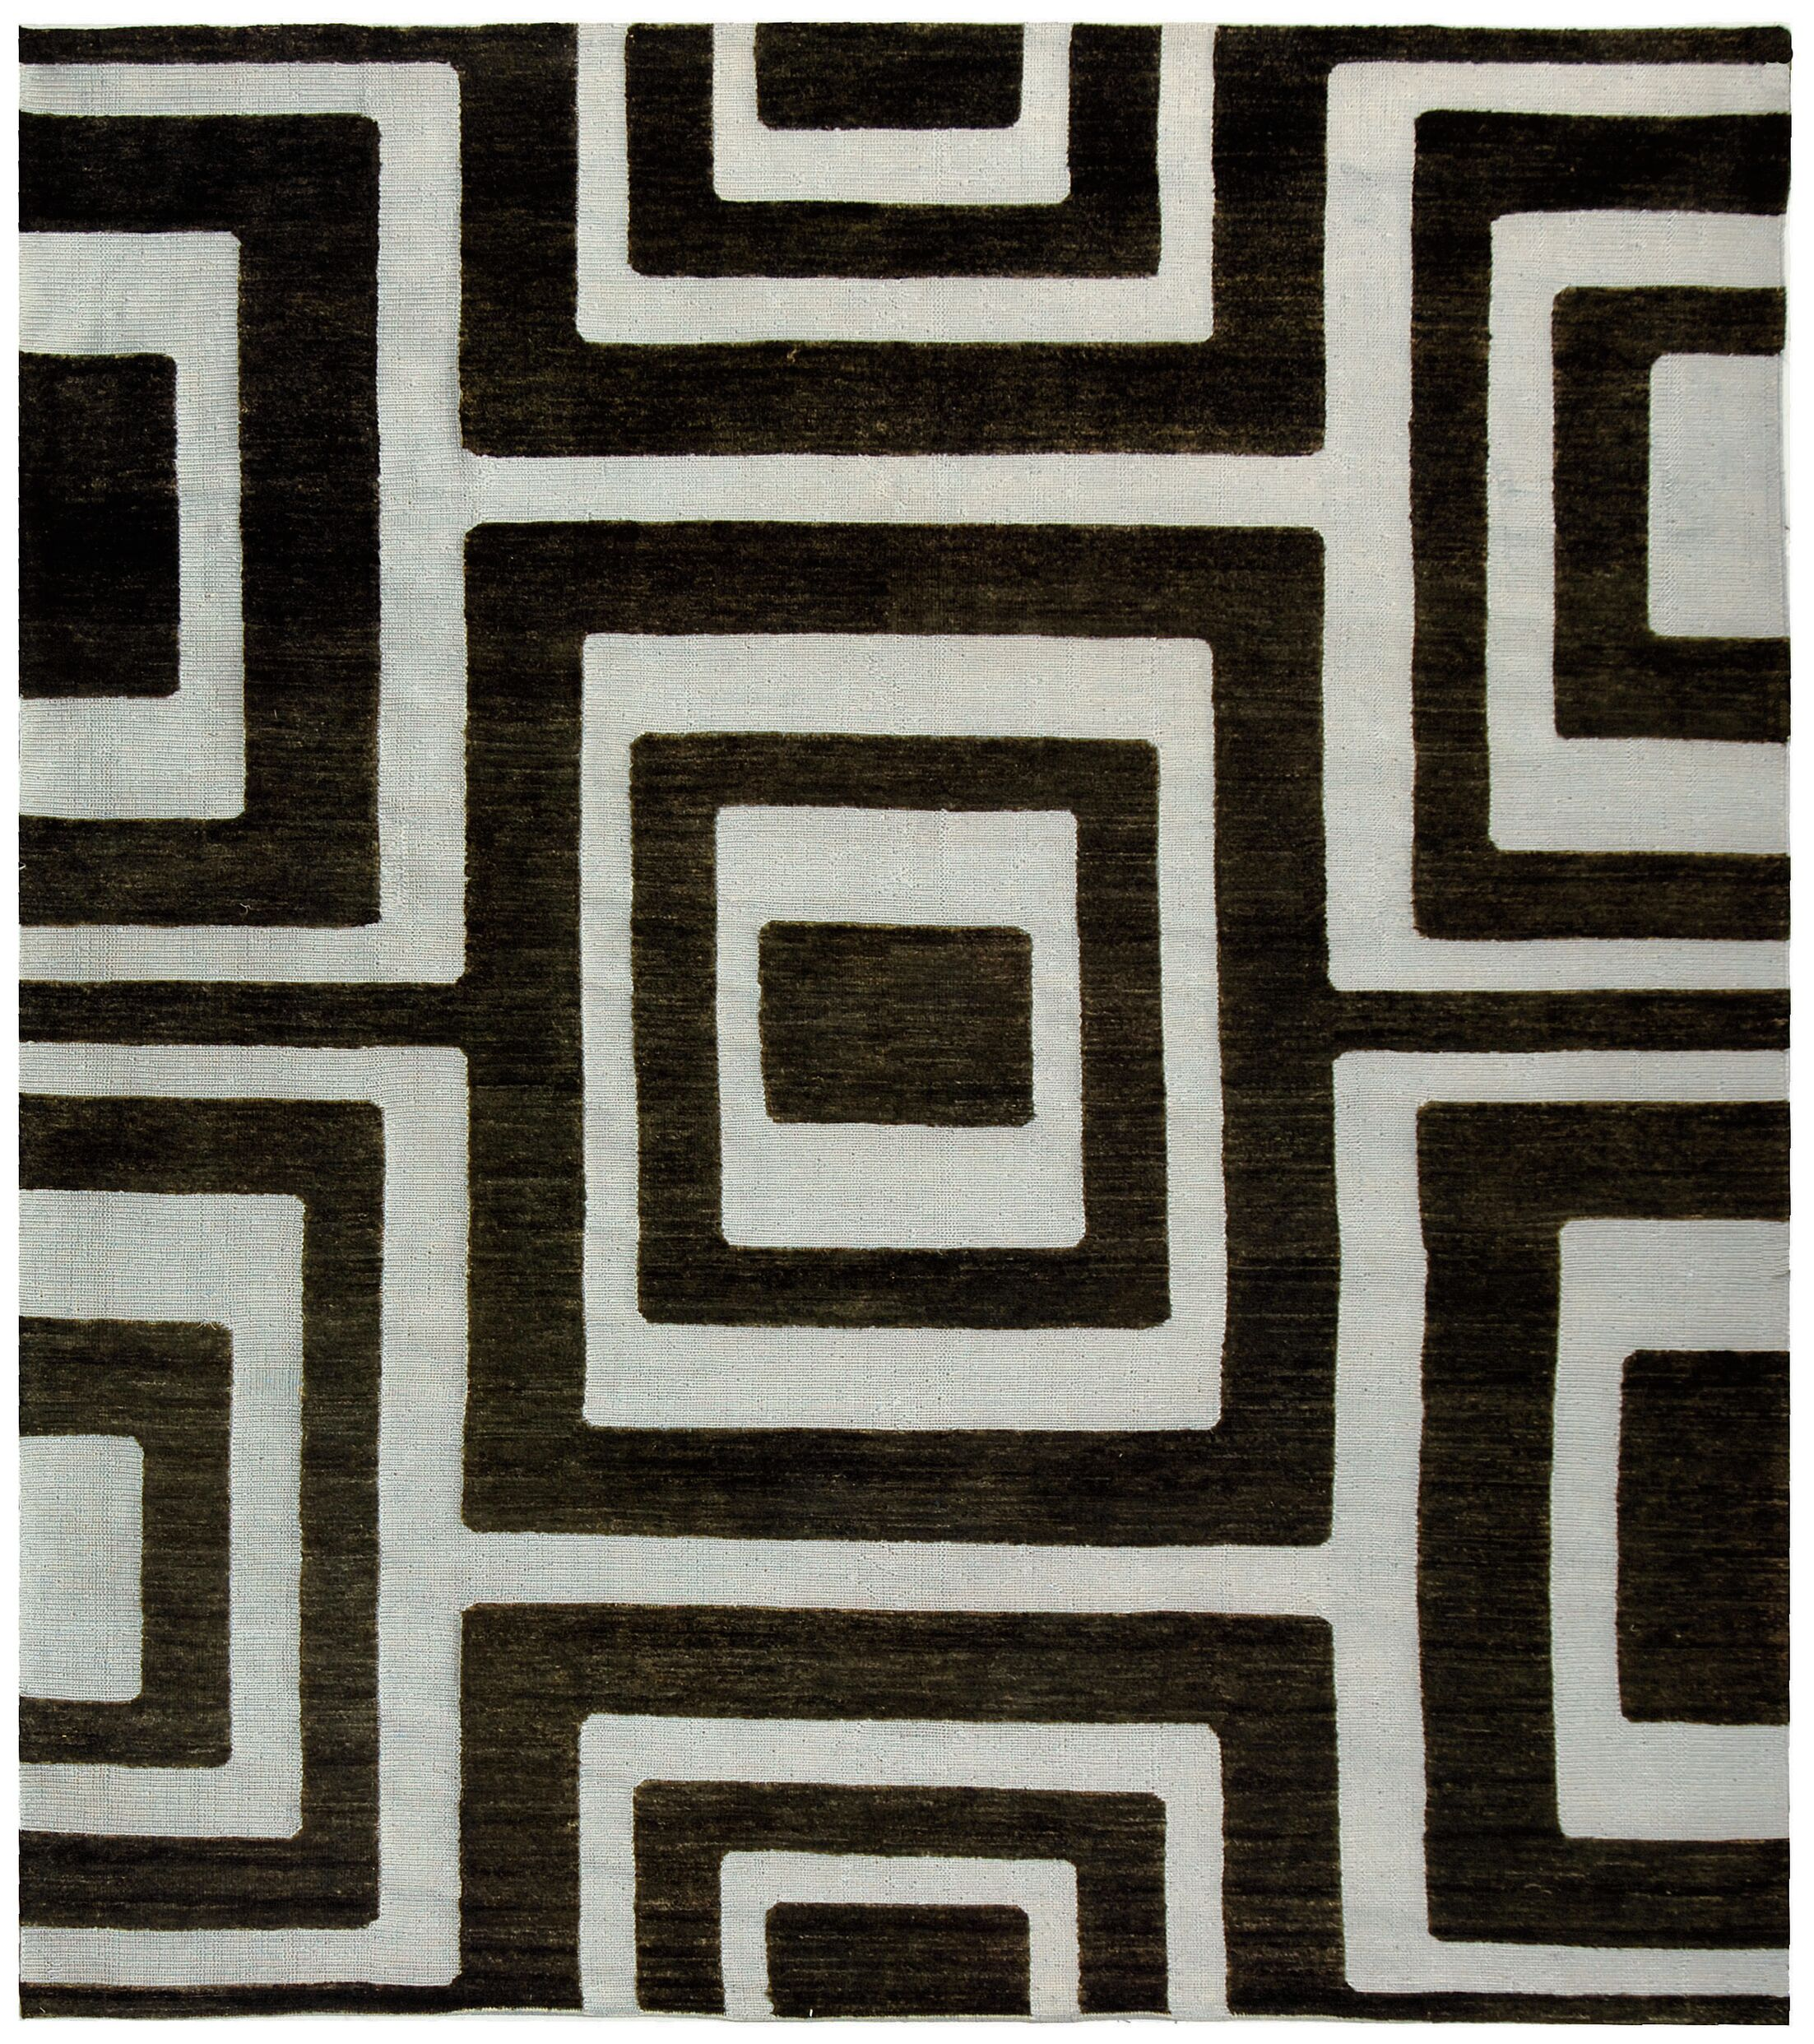 Santa Fe Silver/Black Area Rug Rug Size: Rectangle 4' x 6'